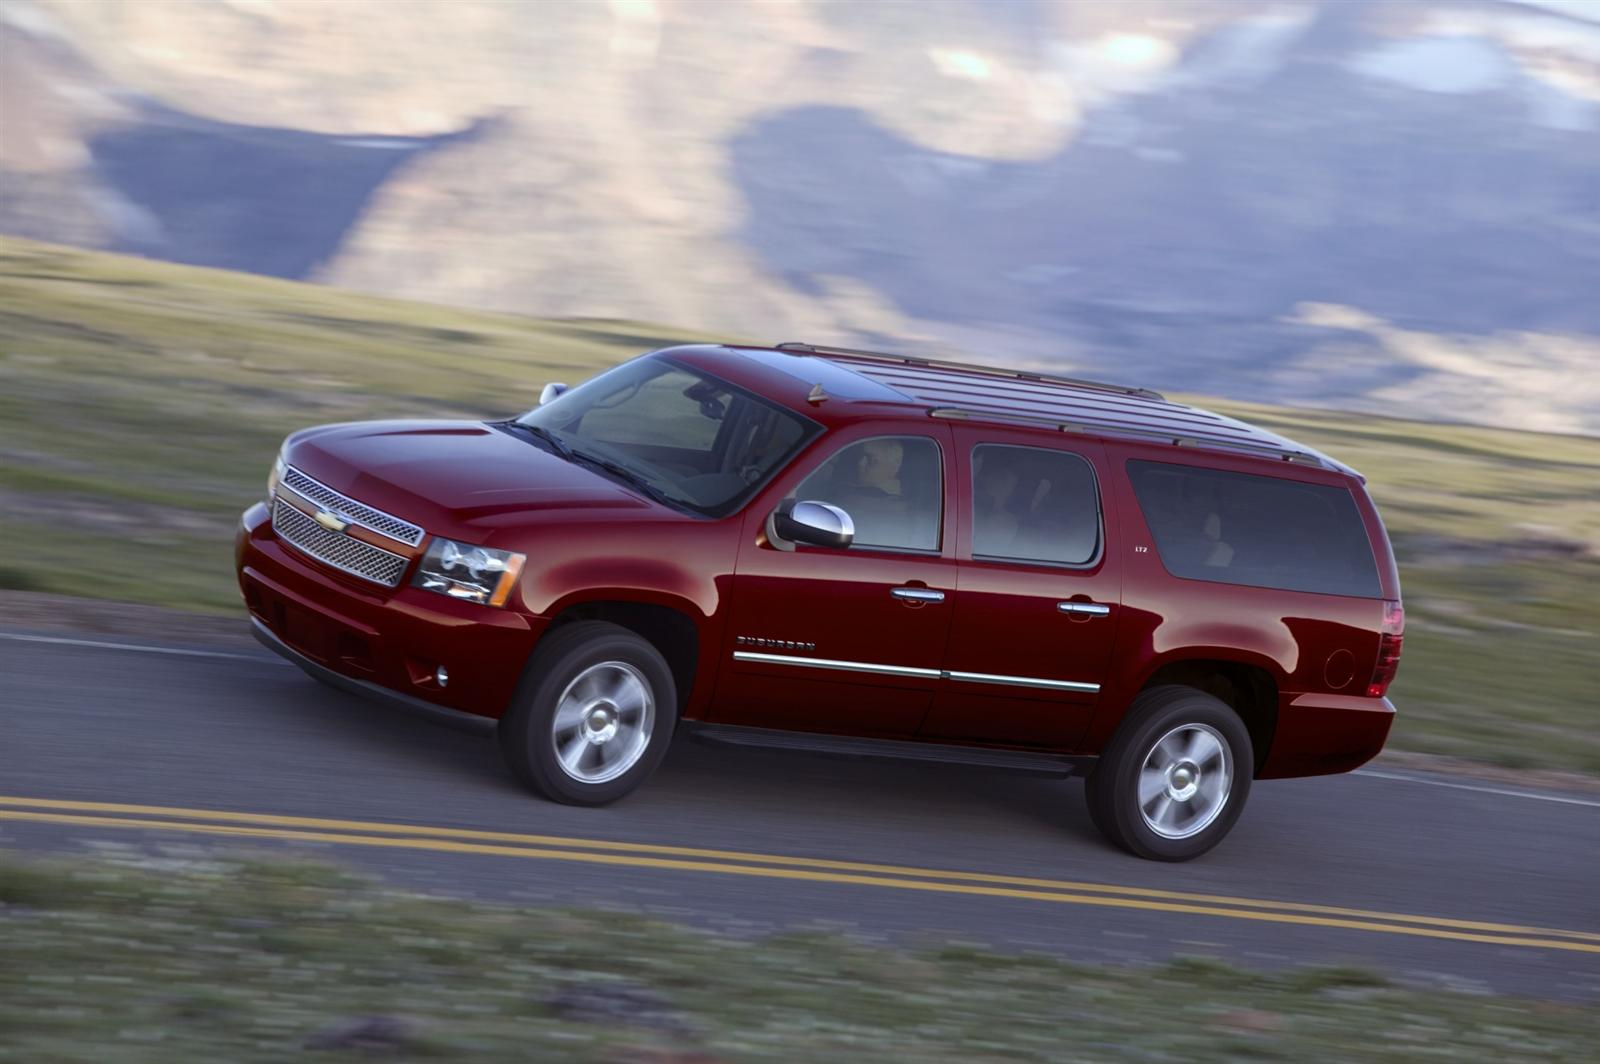 2011 chevrolet suburban 1 2011 Chevrolet Suburban The New Beast on the Road